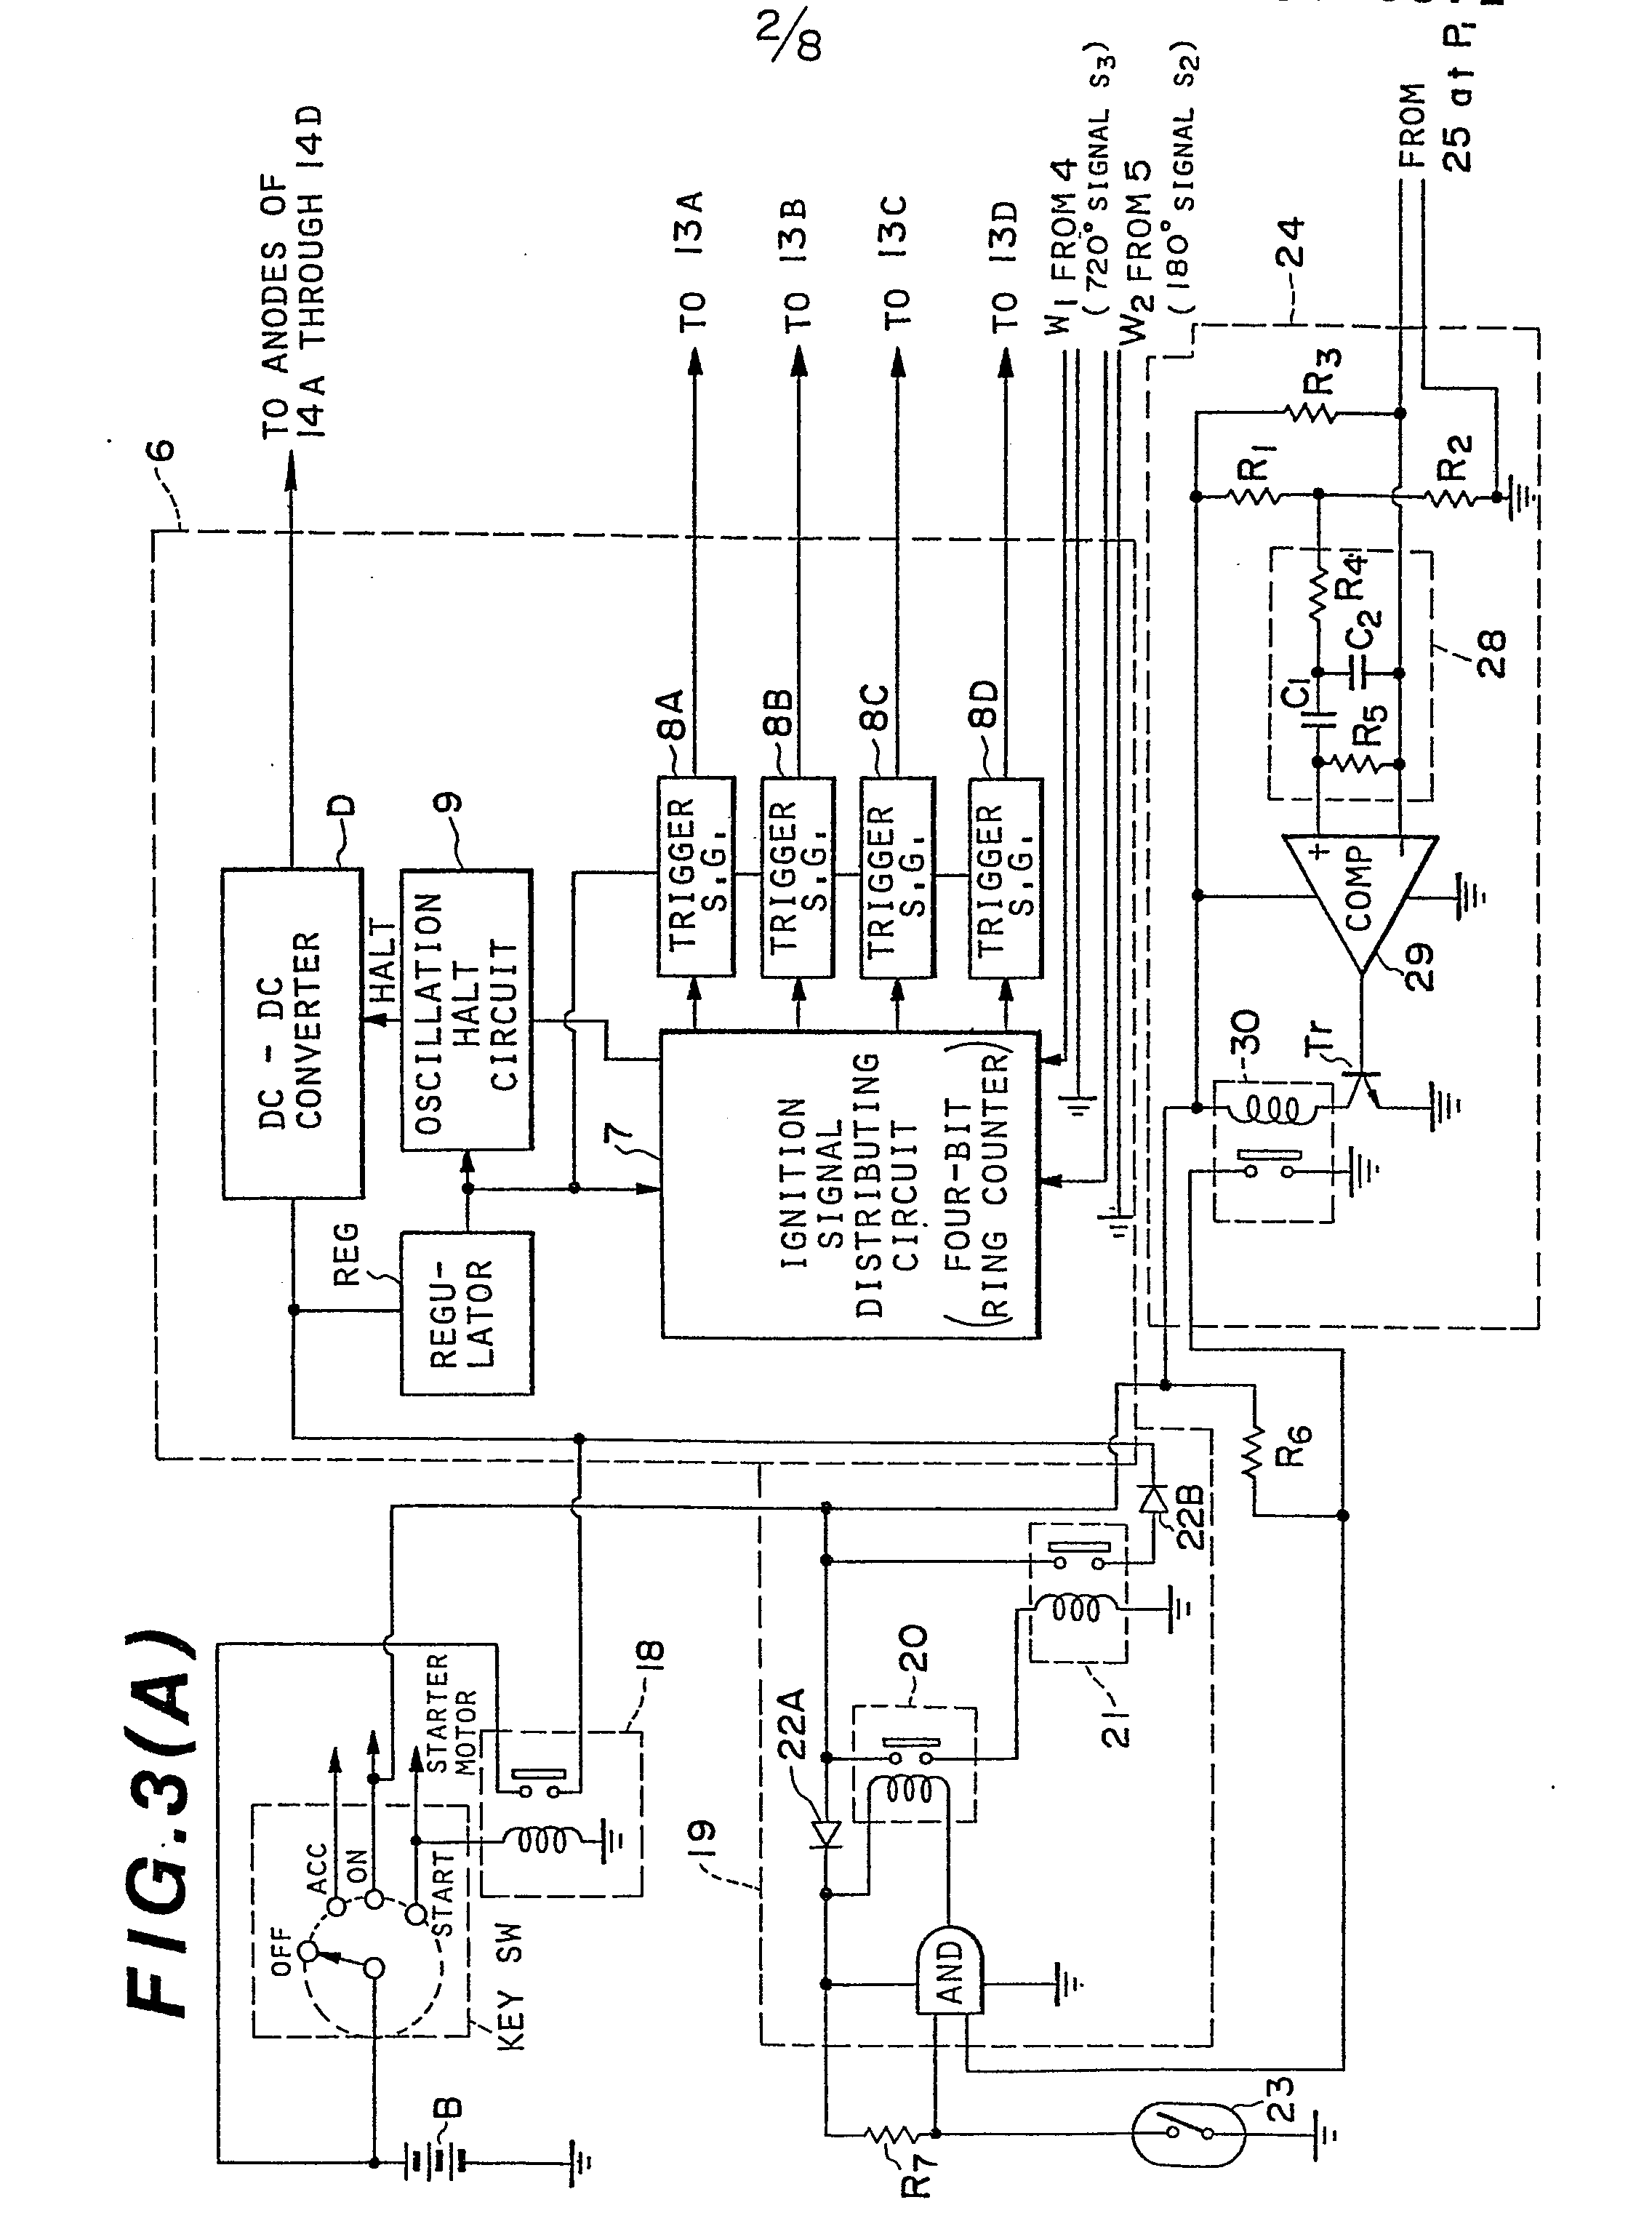 patent ep0075872a2 - an ignition system for subsidiarily starting a diesel engine